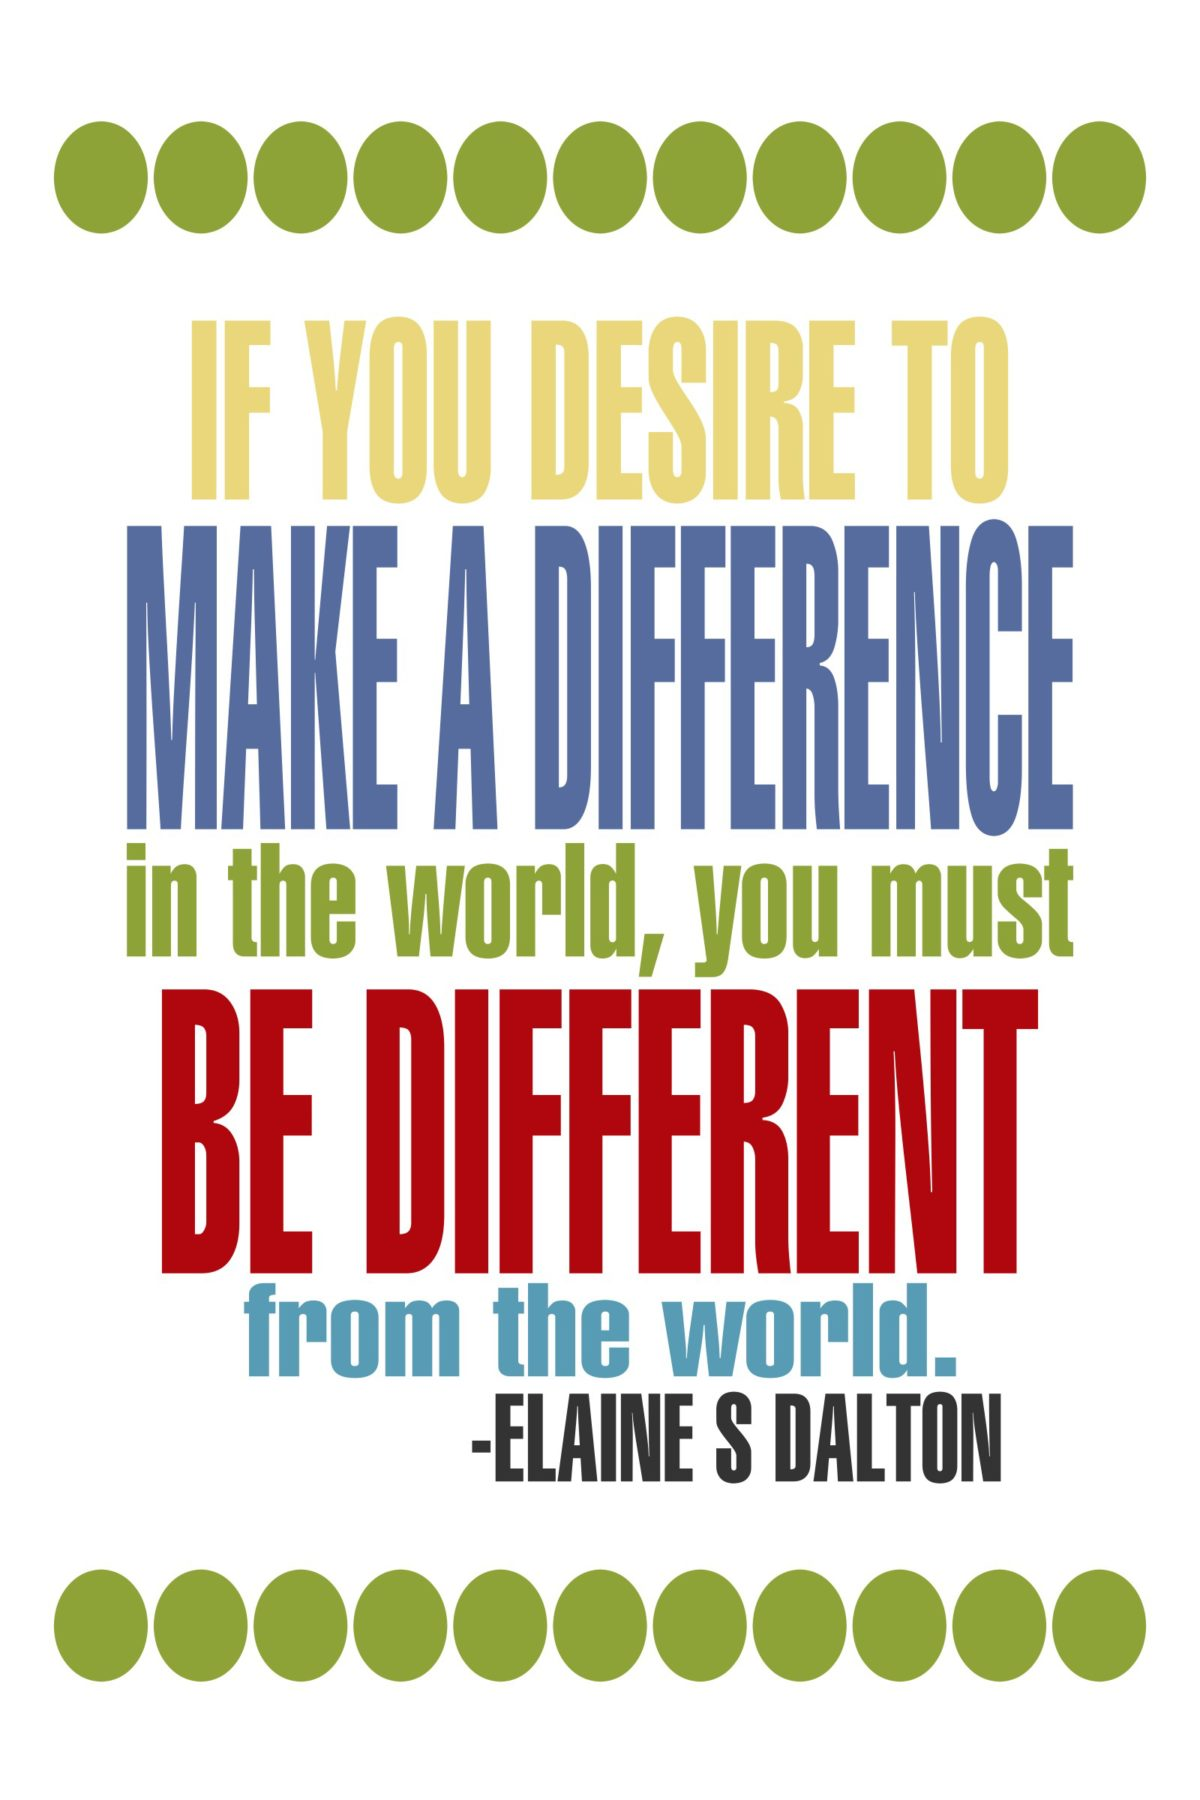 If you desire to make a difference…quote ― Elaine S. Dalton